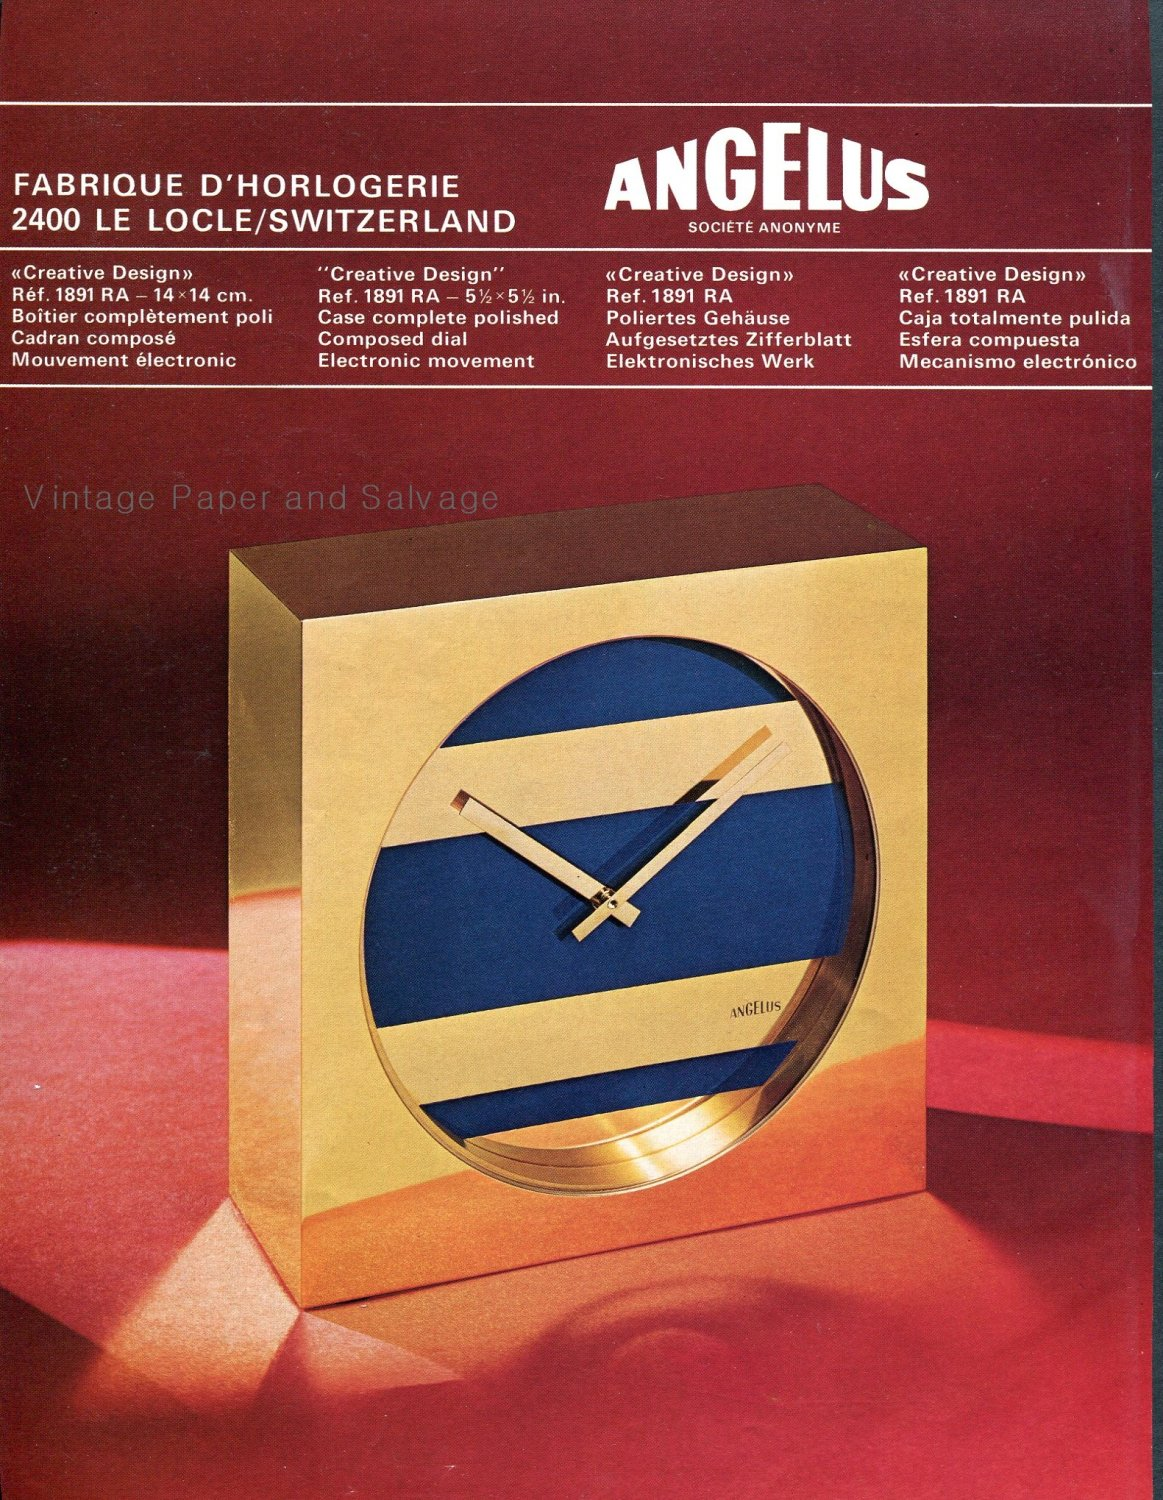 Angelus SA Clock Company Le Locle Switzerland 1974 Swiss Magazine Ad Advert Publicite Suisse